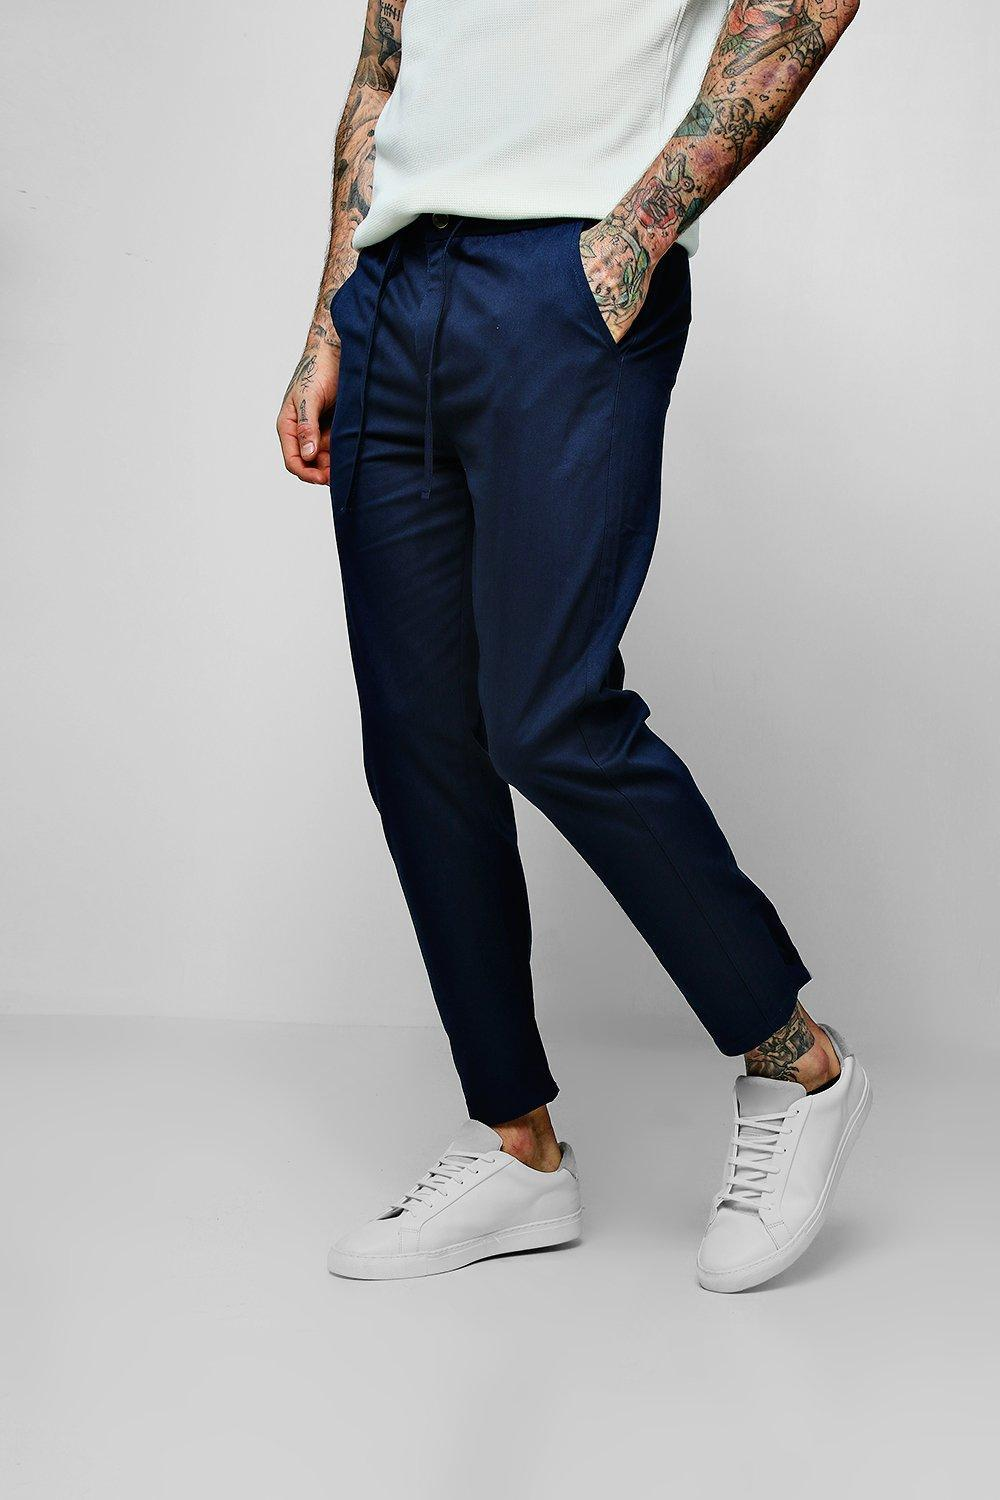 b1648800c86b Lyst - Boohoo Drawcord Waist Slim Fit Chino Trouser in Blue for Men